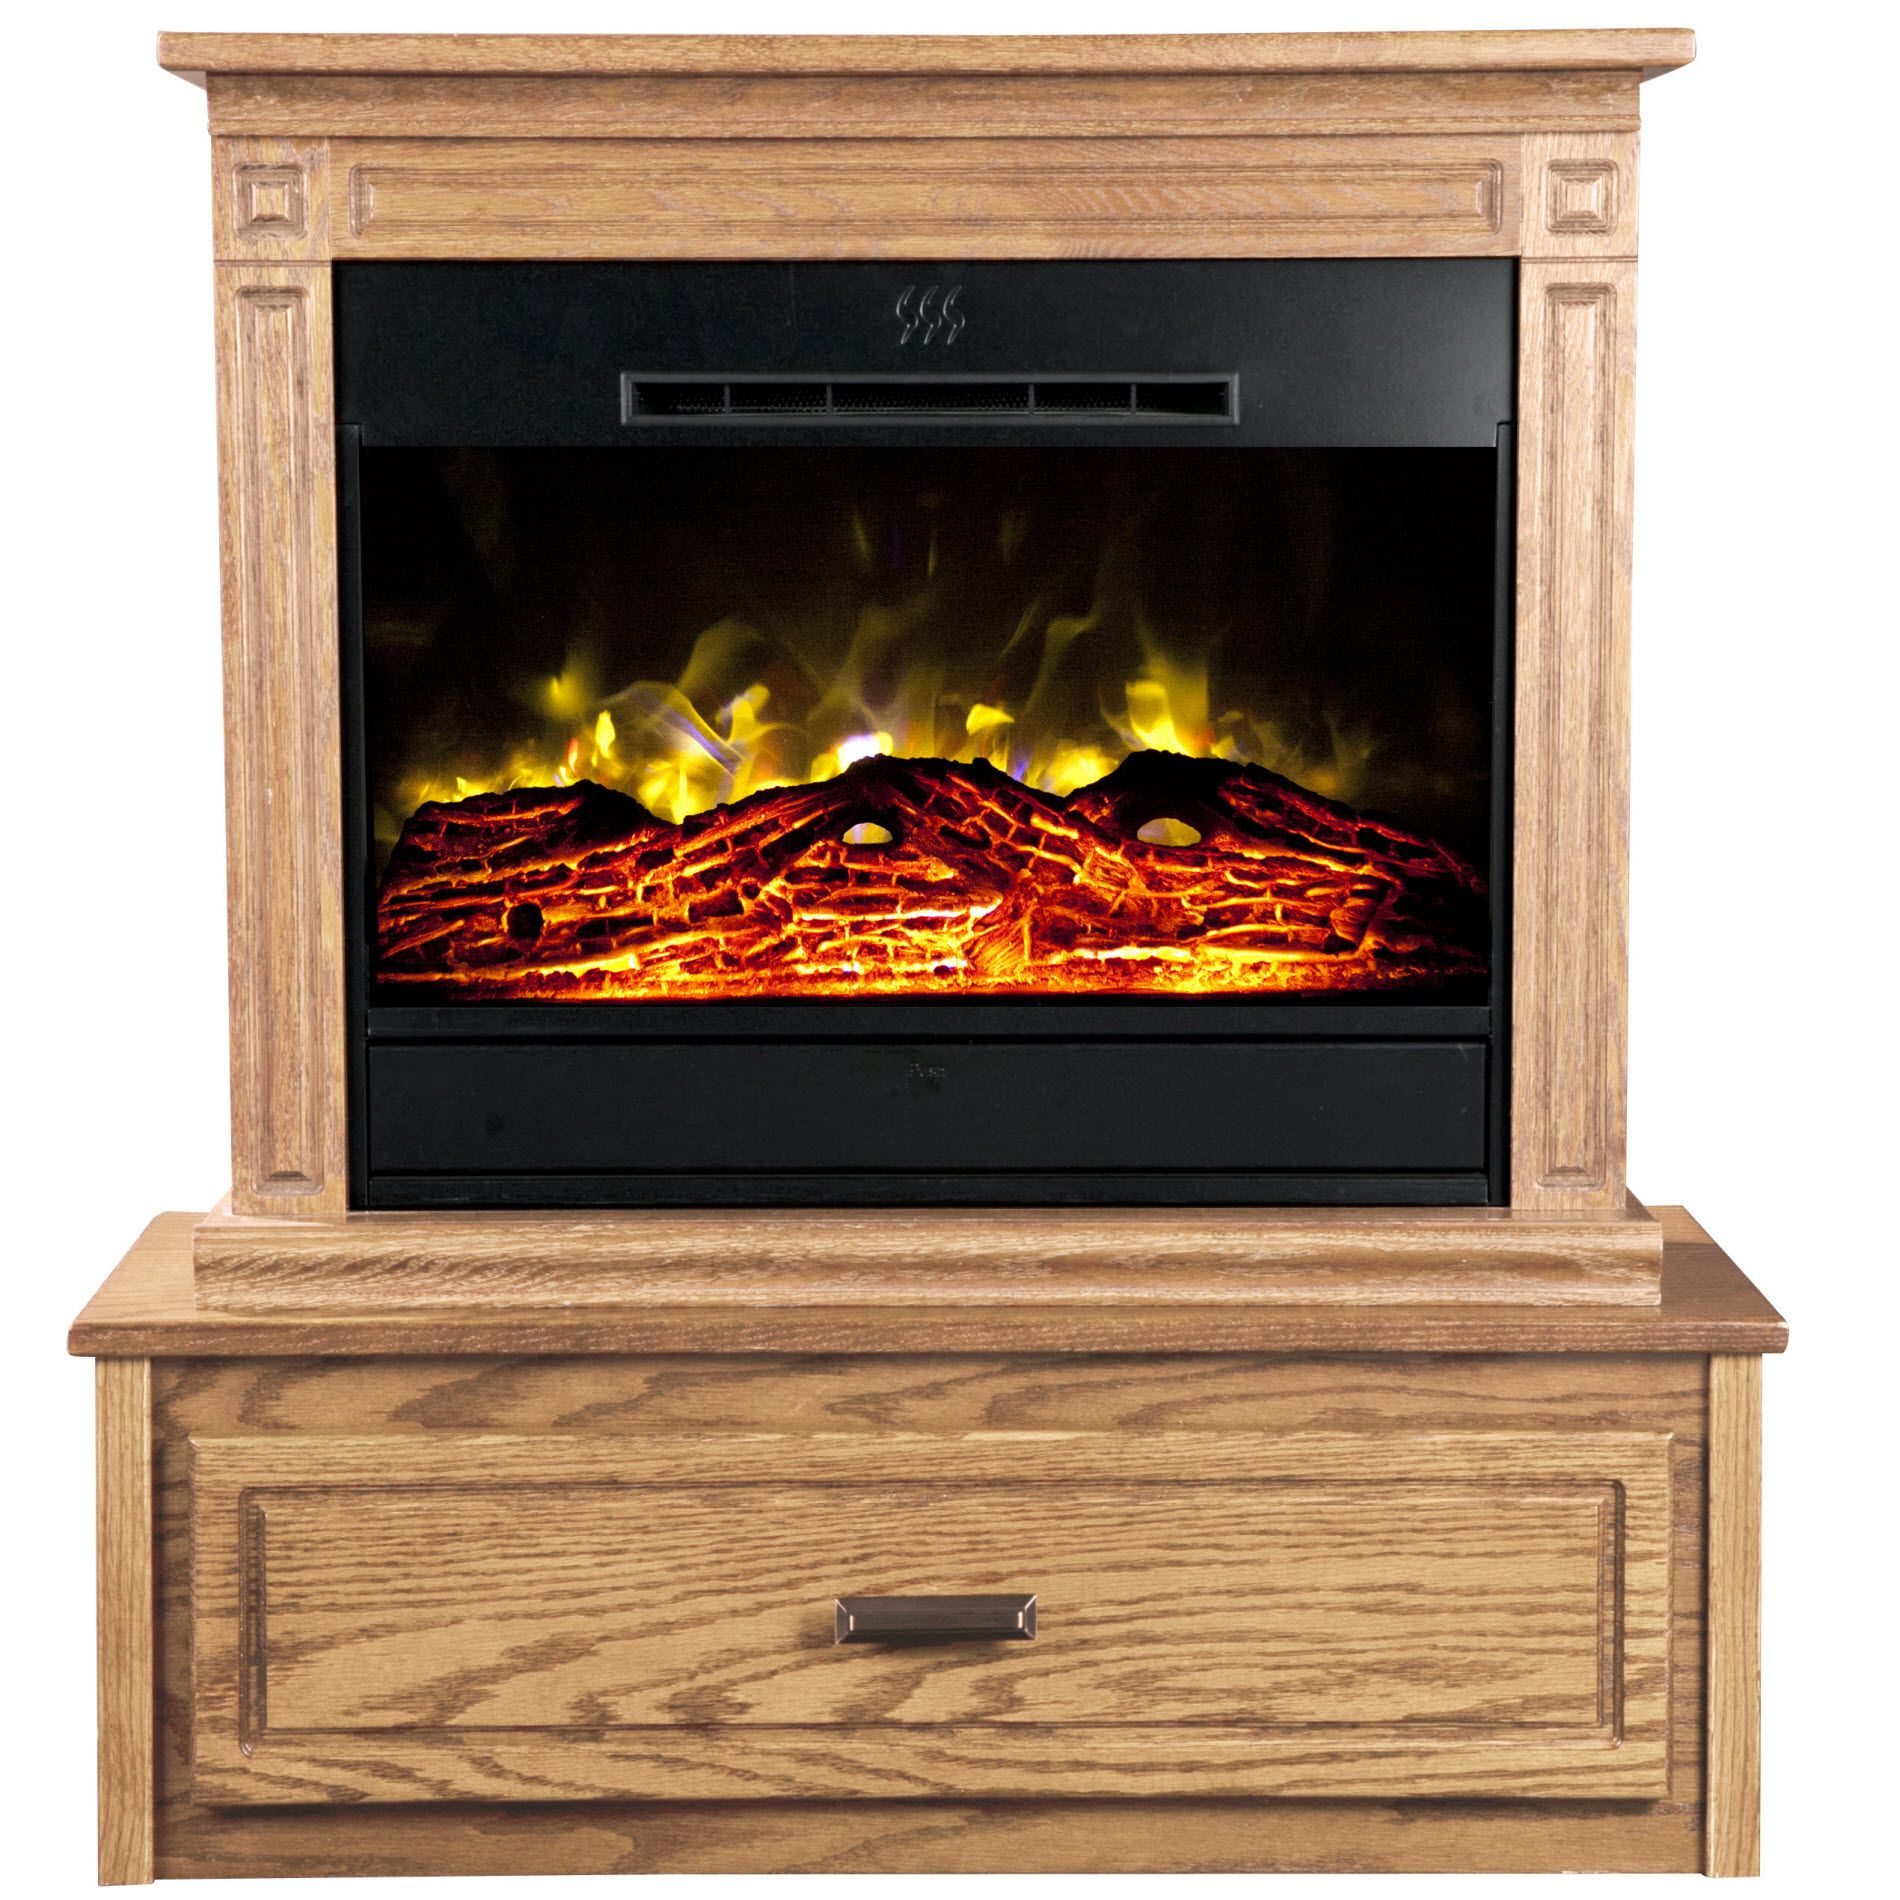 Heat Surge Hearth Accessory for Roll-n-Glow Electric Fireplace - Light Oak